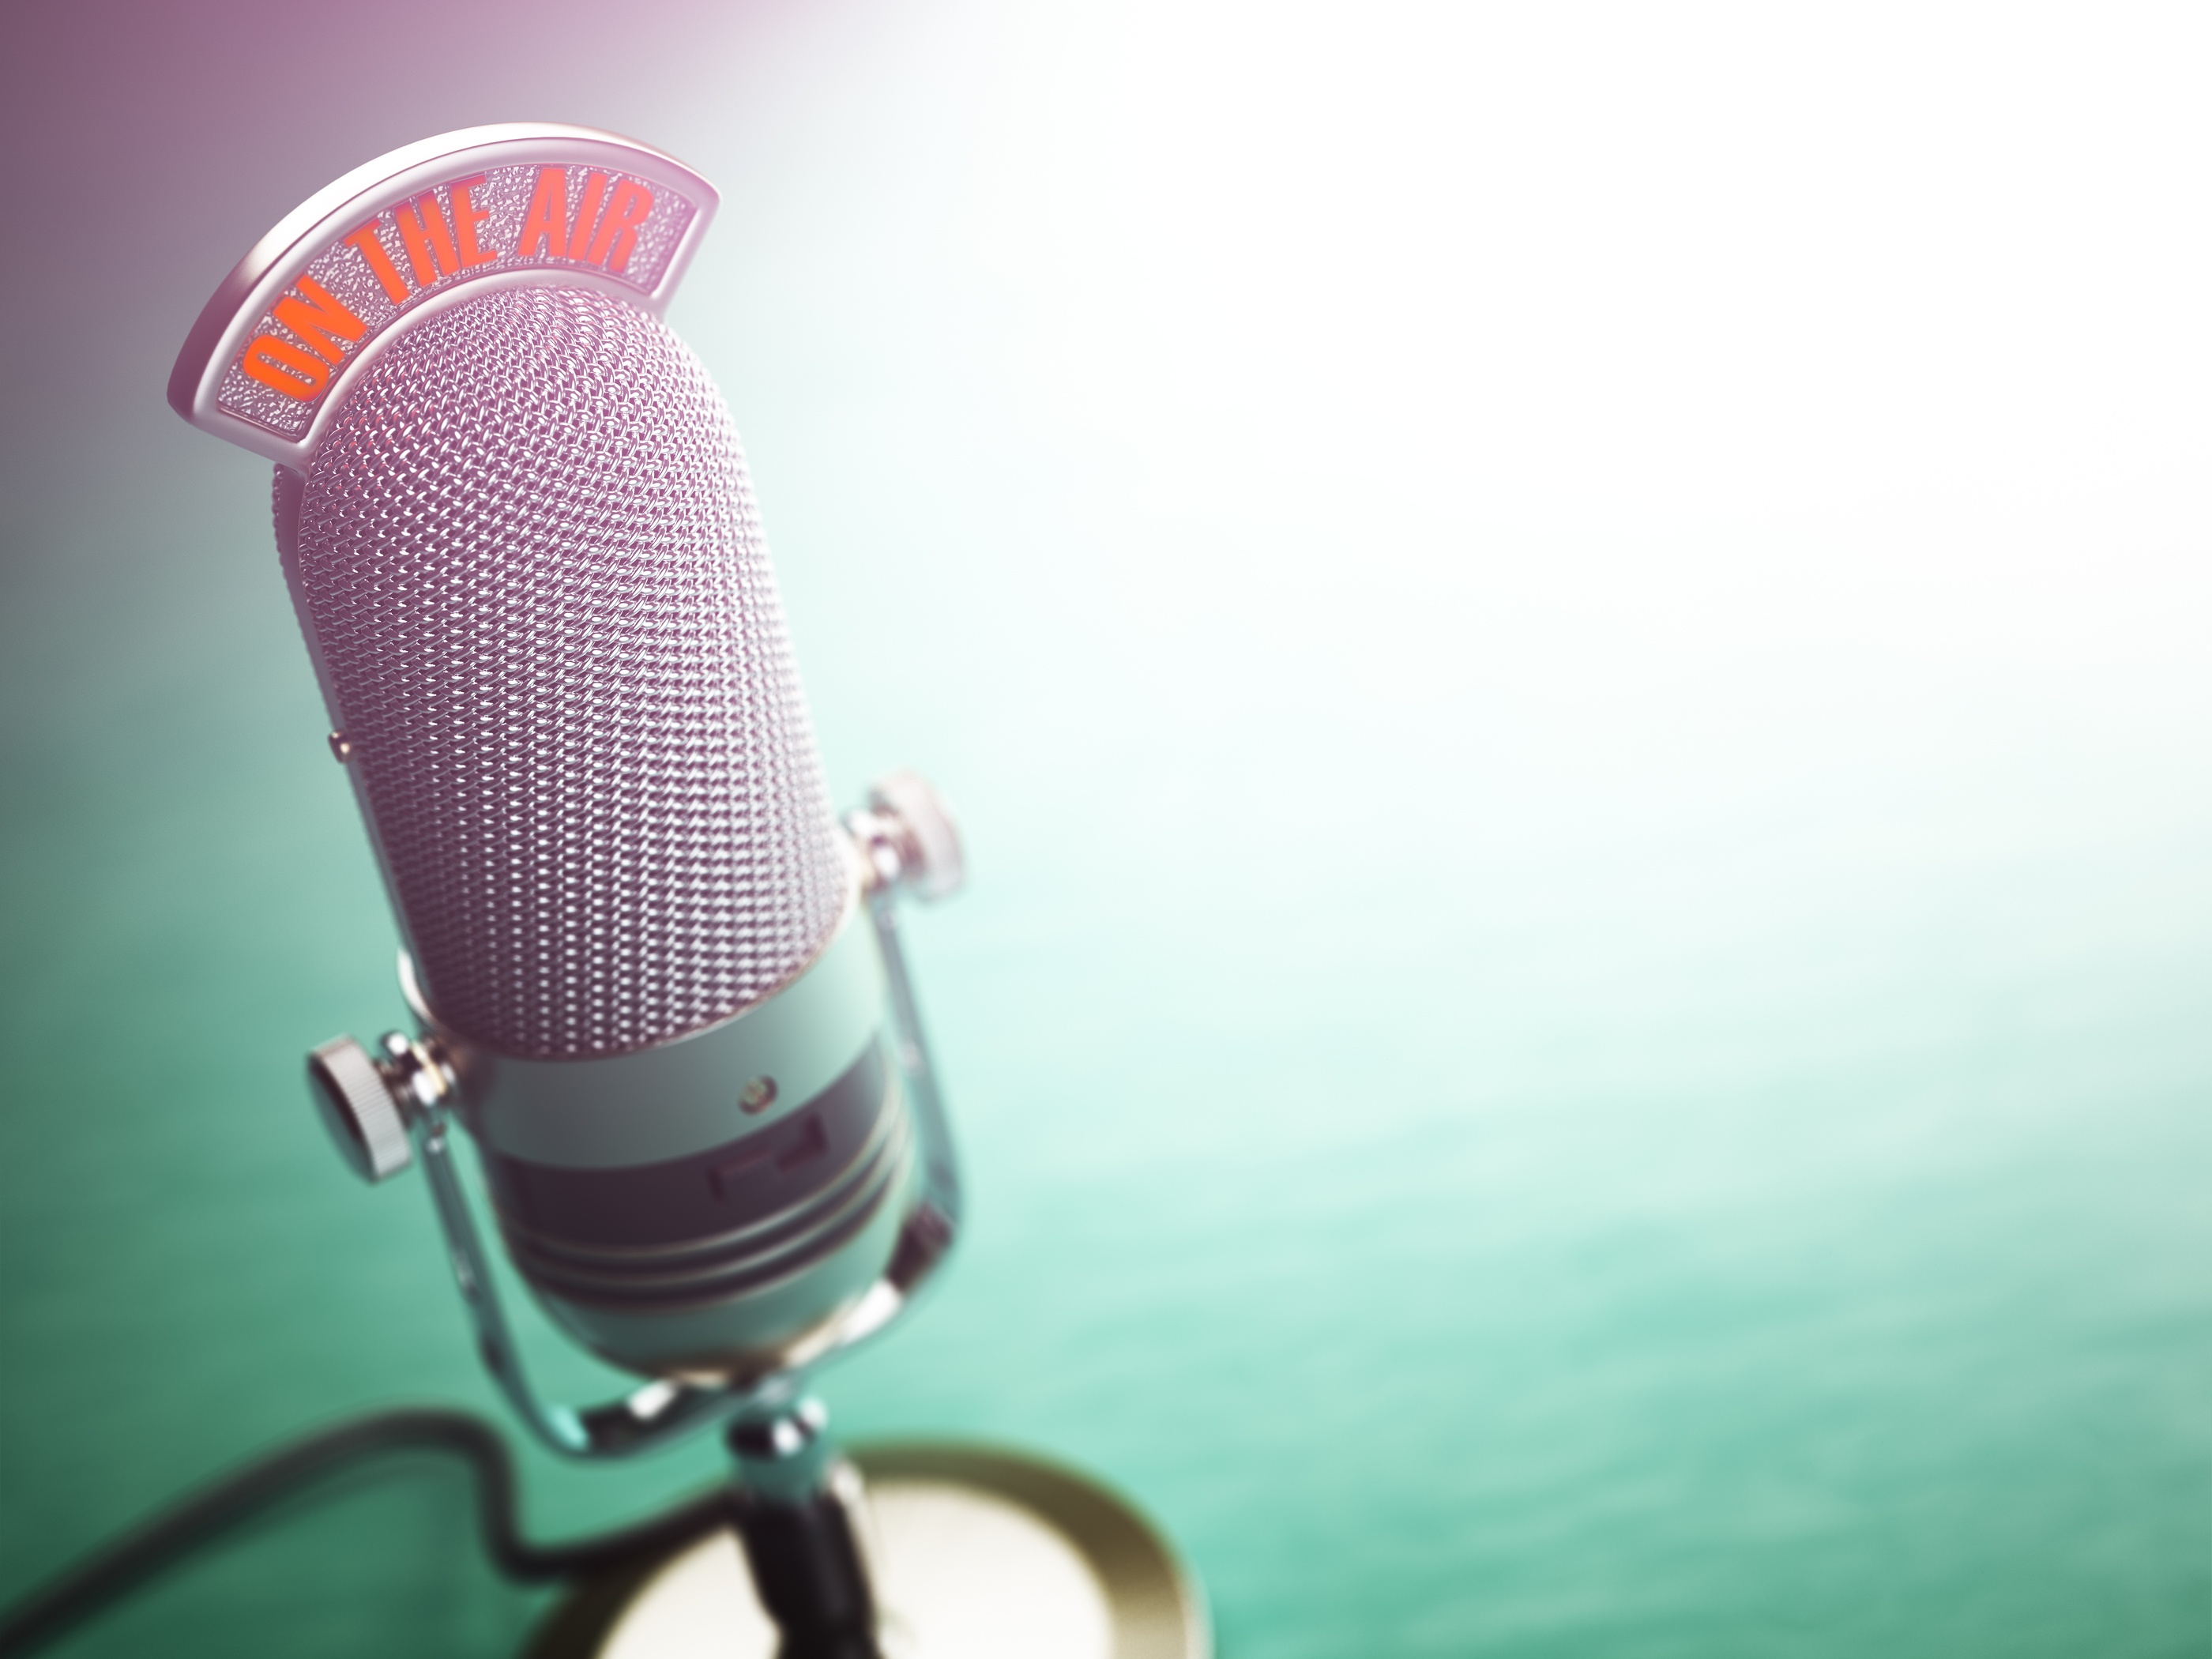 bigstock-Retro-old-microphone-with-text-154255286